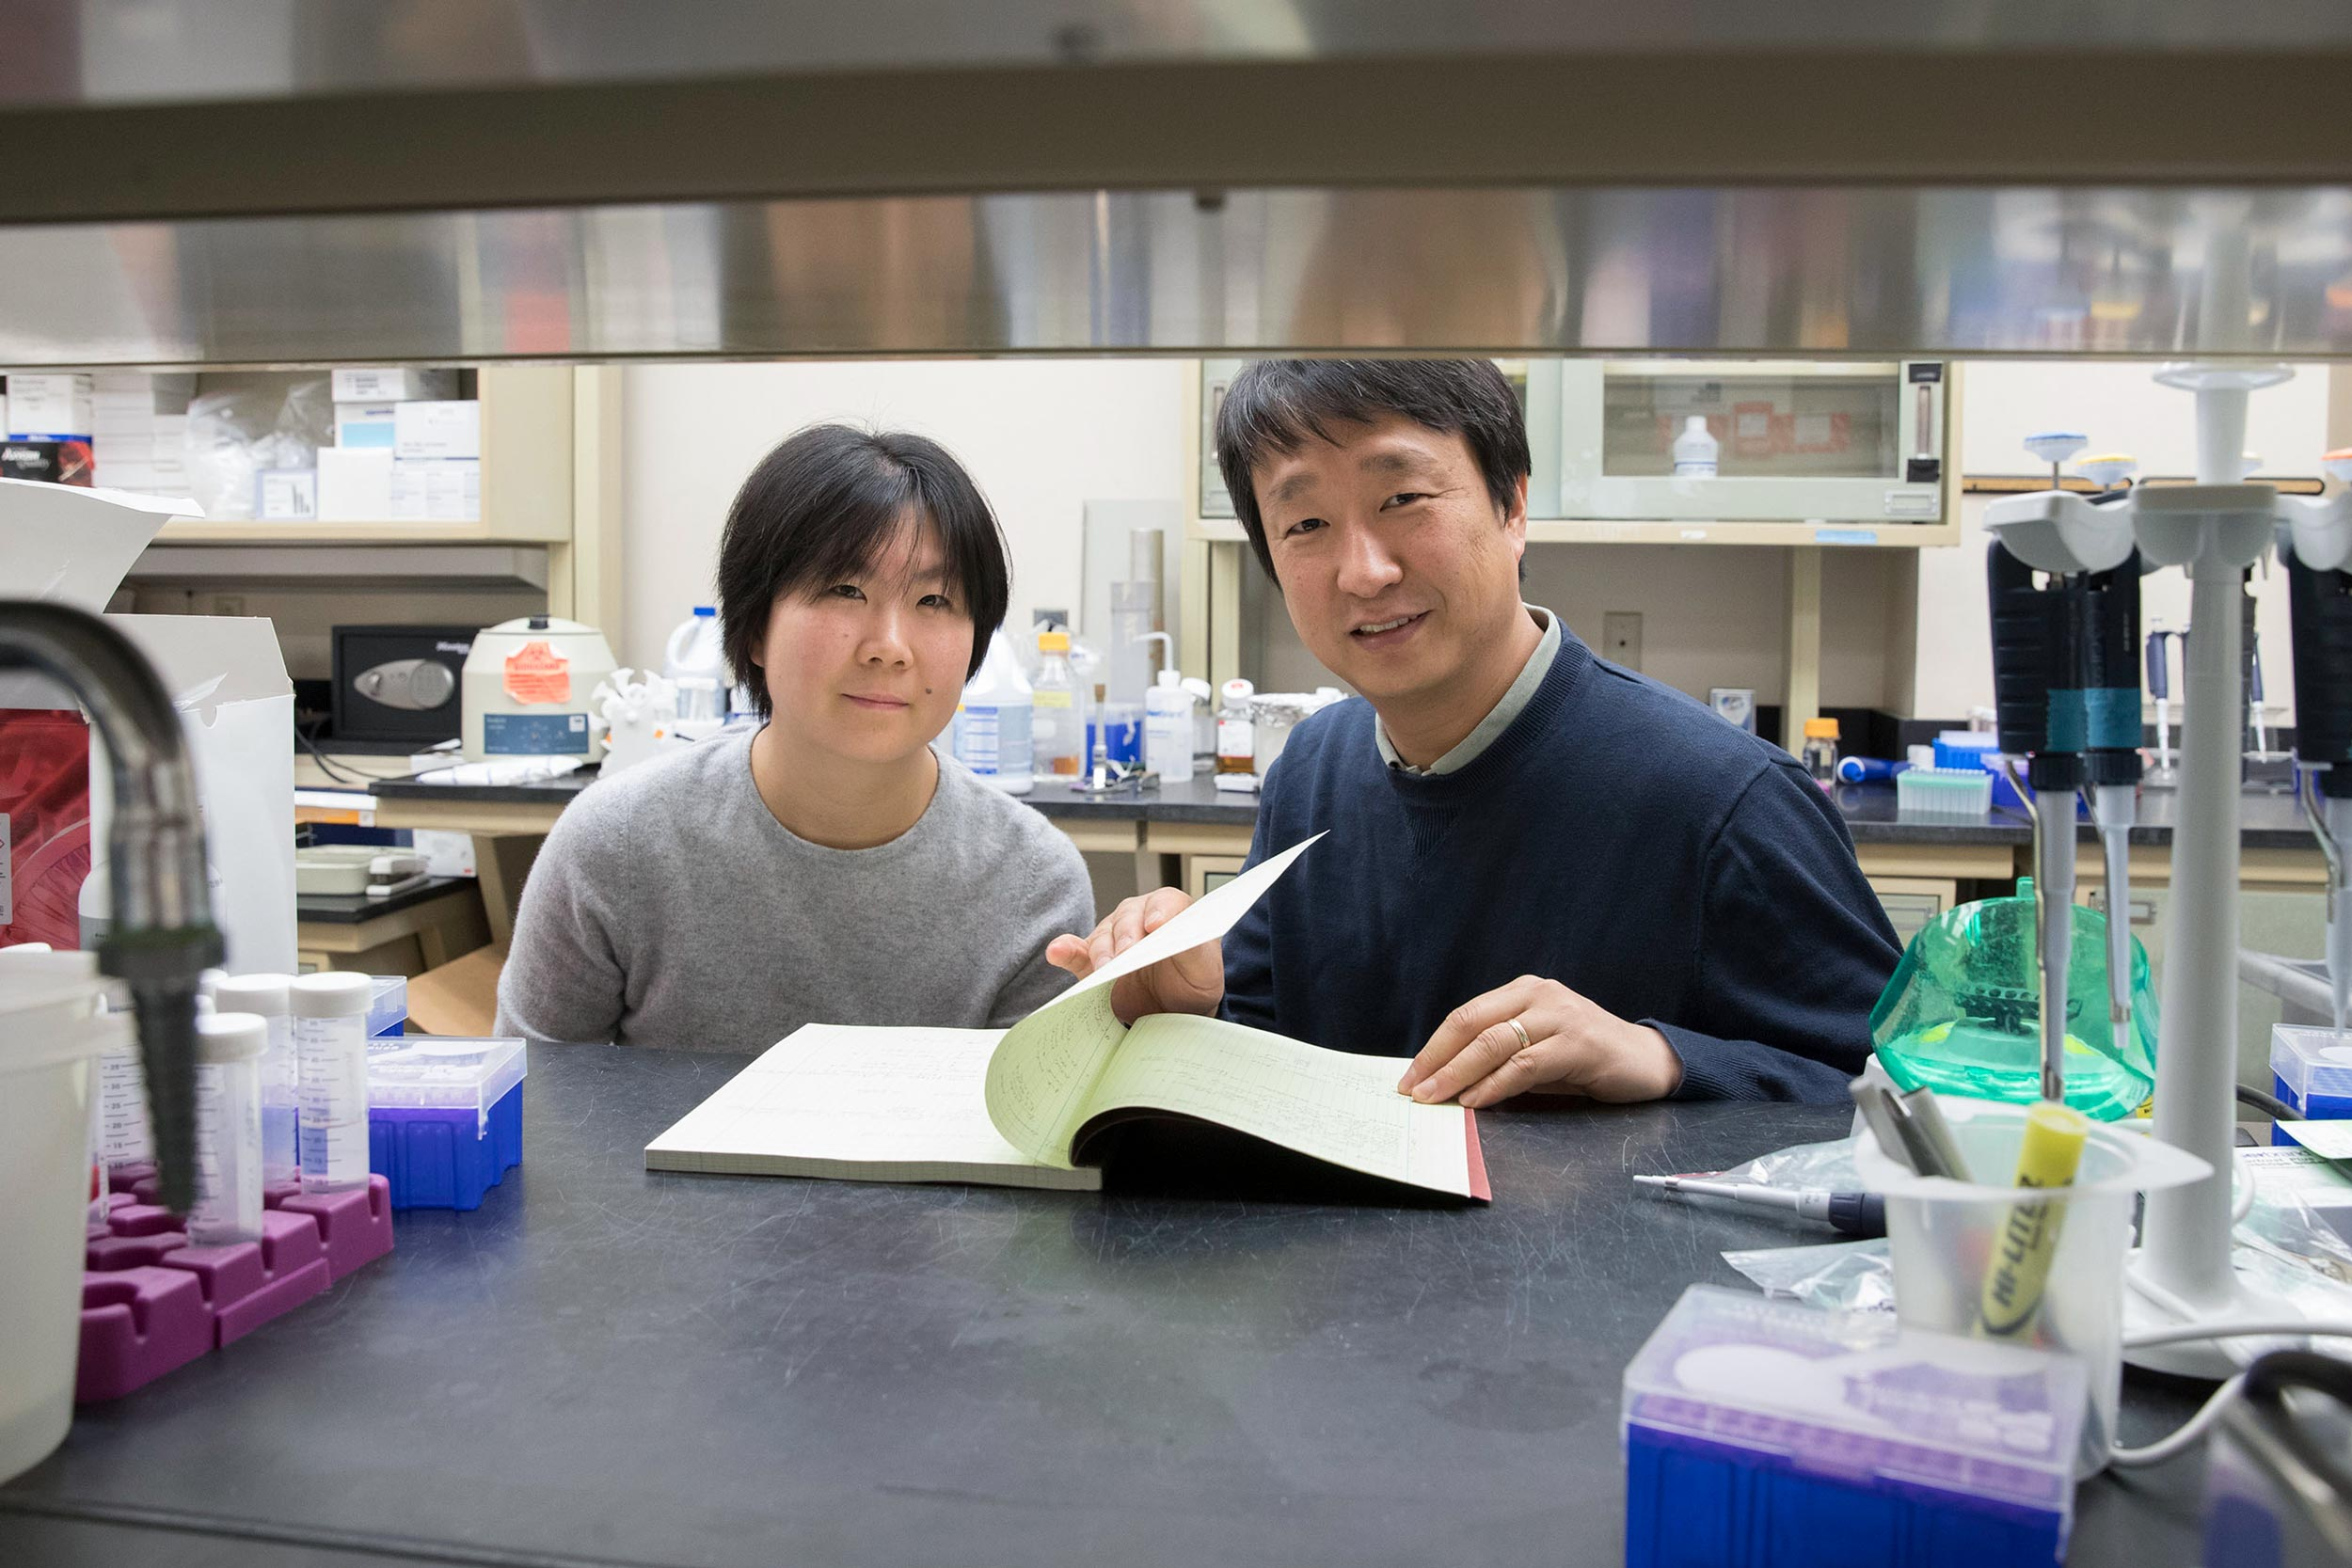 Postdoctoral researcher Ting-Ting Du, left, led the research in the lab of neuroscientist Jung-Bum Shin, right, that explores the role of the inner ear's cuticular plate in hearing loss.